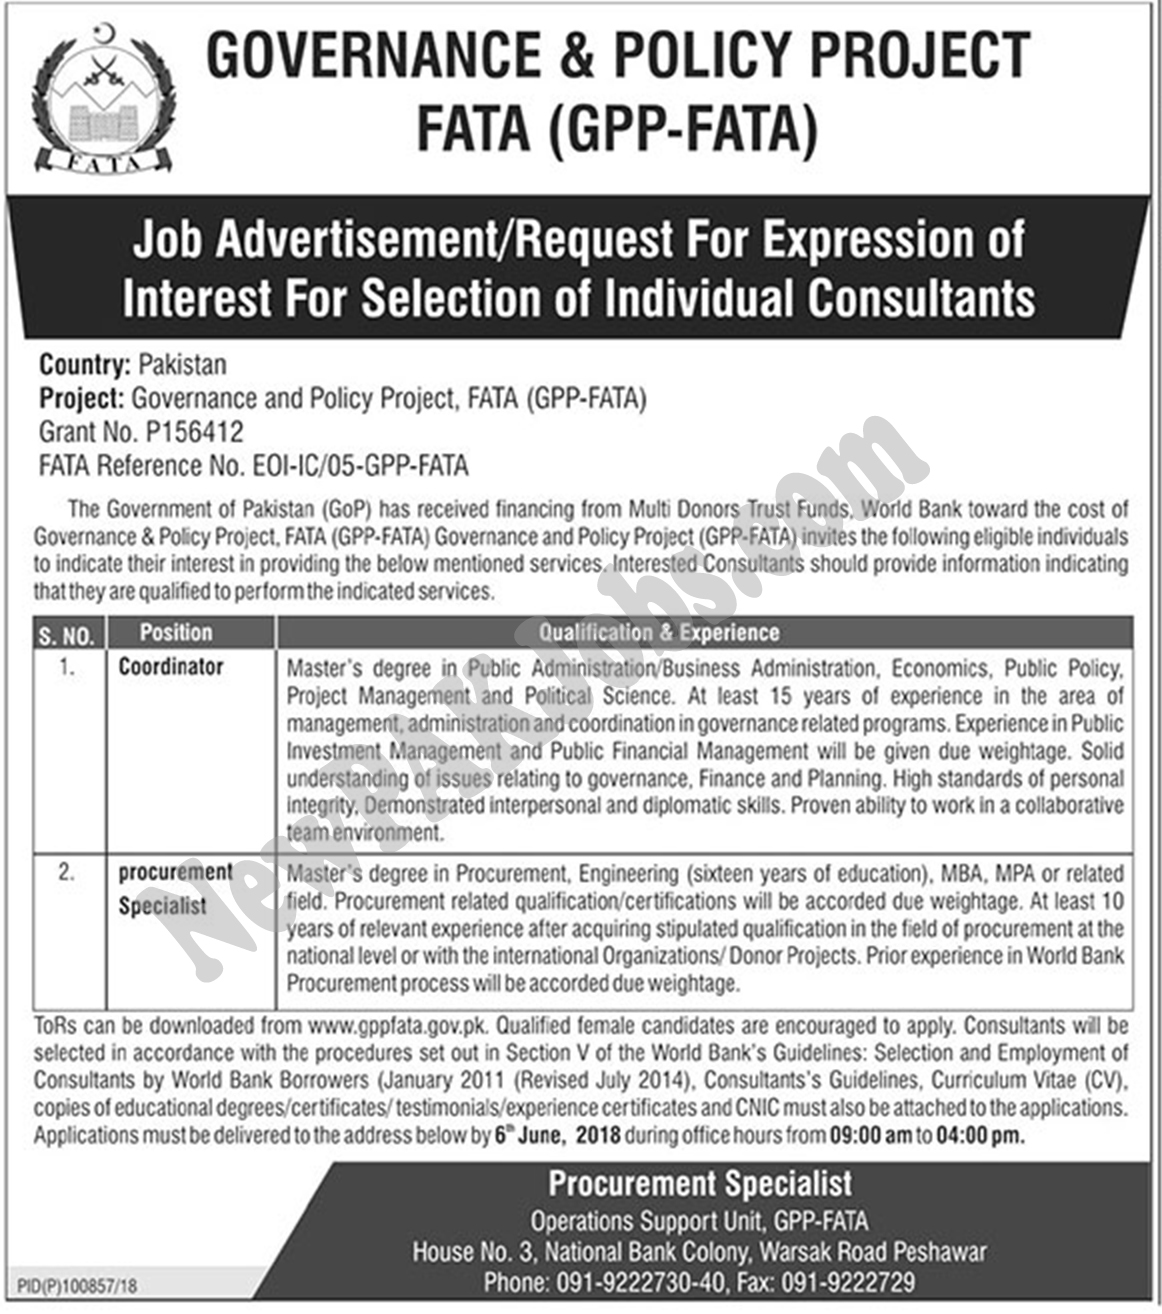 Latest FATA Jobs 2018 under Governance & Policy Project